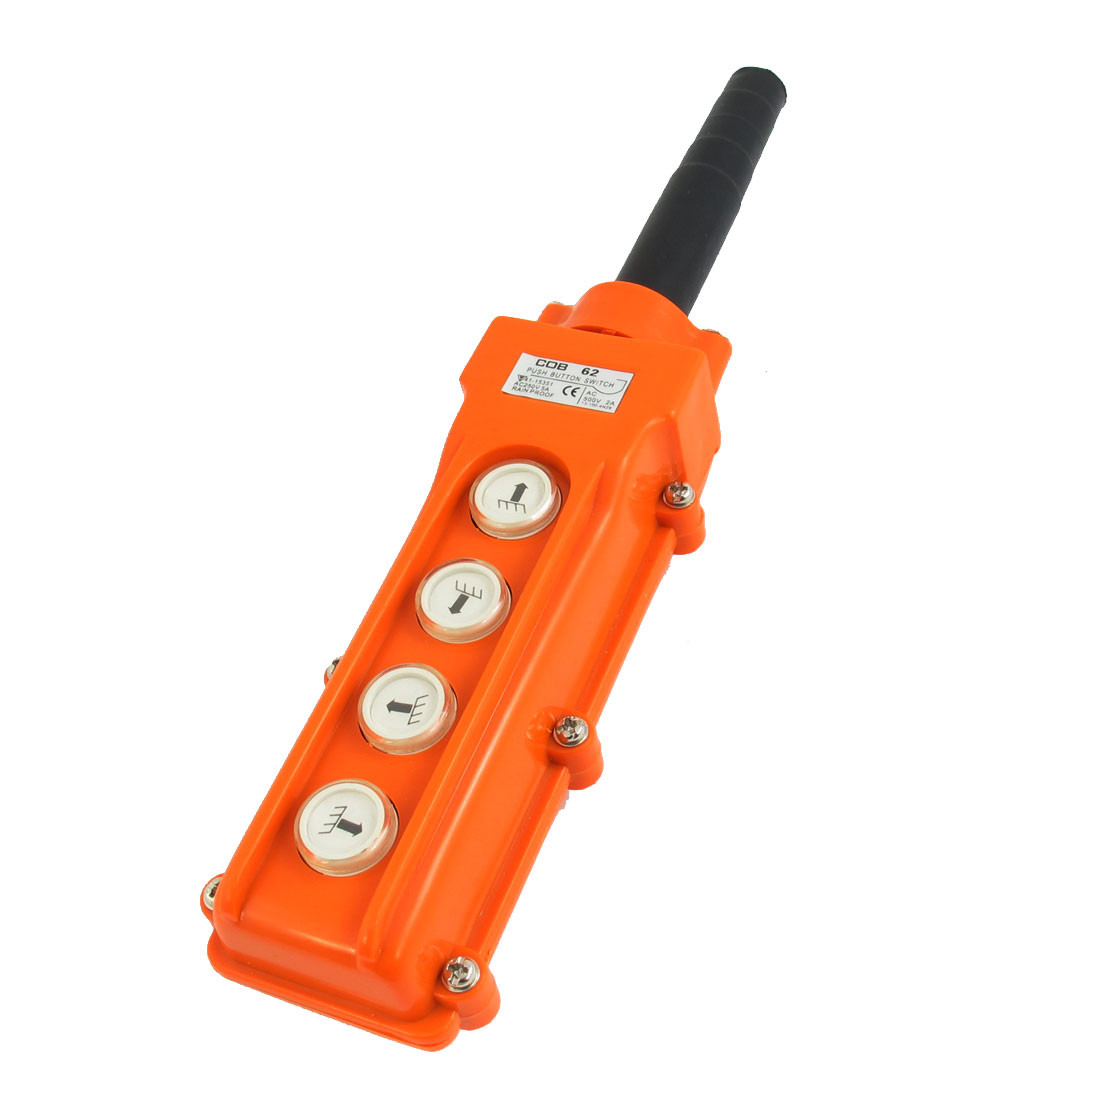 COB62 AC500V 2A Up Down Left Right 4-Way 4-Button Rainproof Hoist Crane Control Station Pushbutton Switch